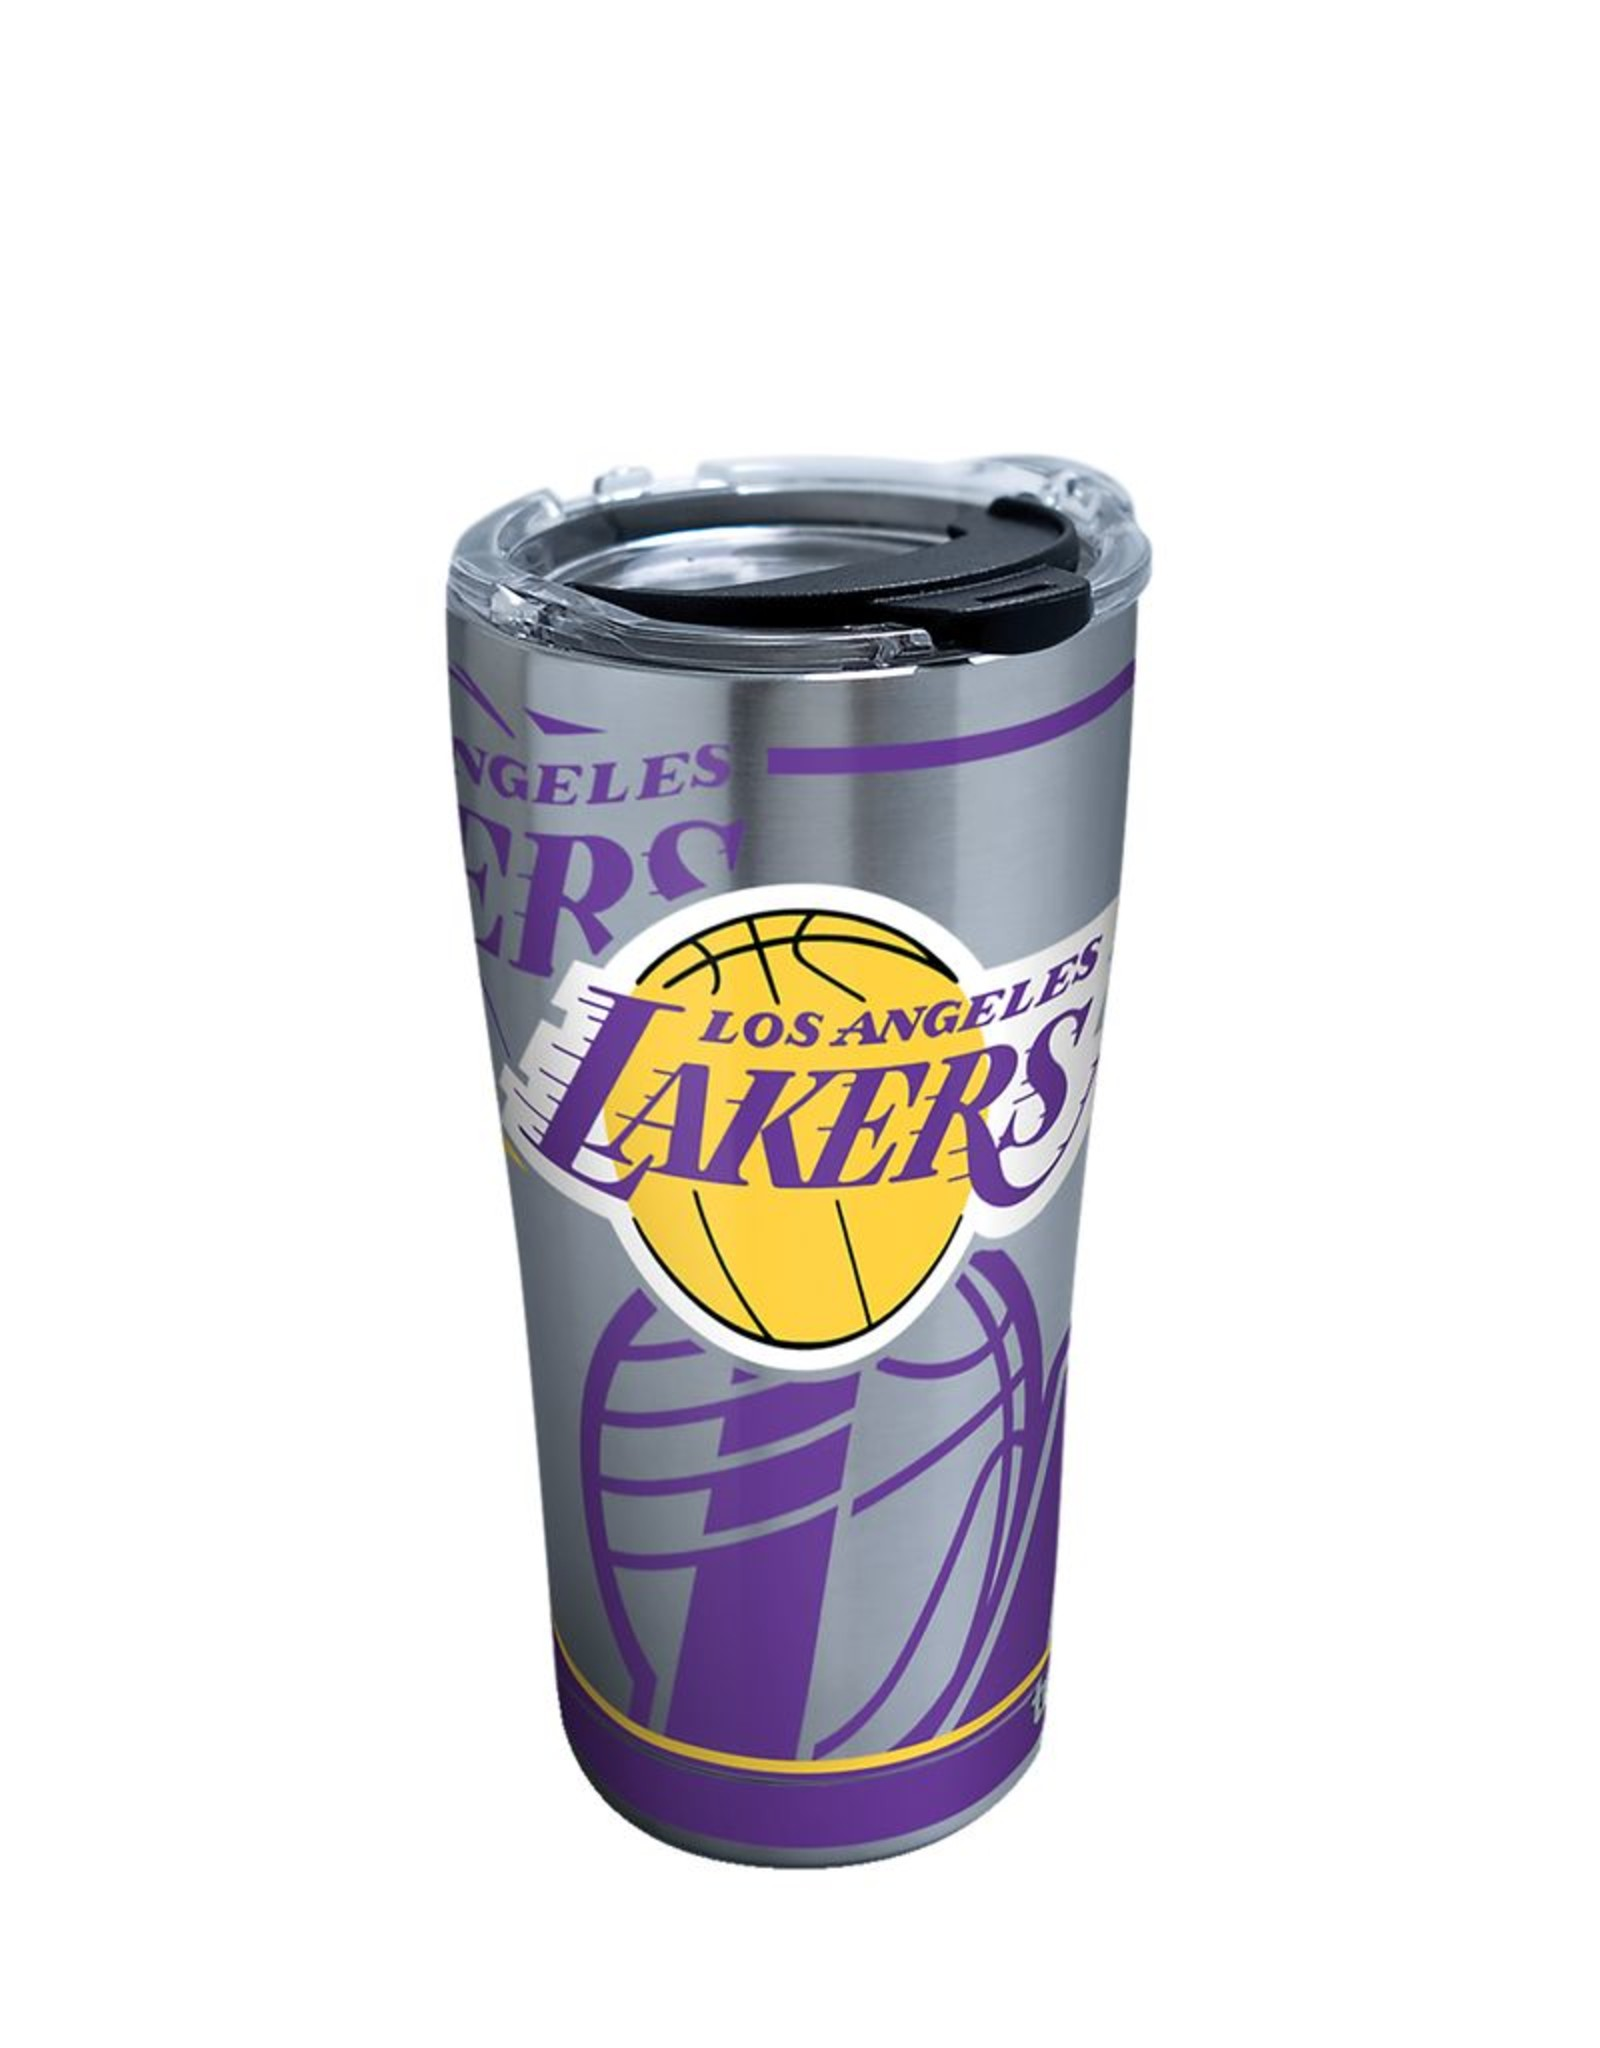 TERVIS Los Angeles Lakers TERVIS 20oz Stainless Steel Paint Tumbler